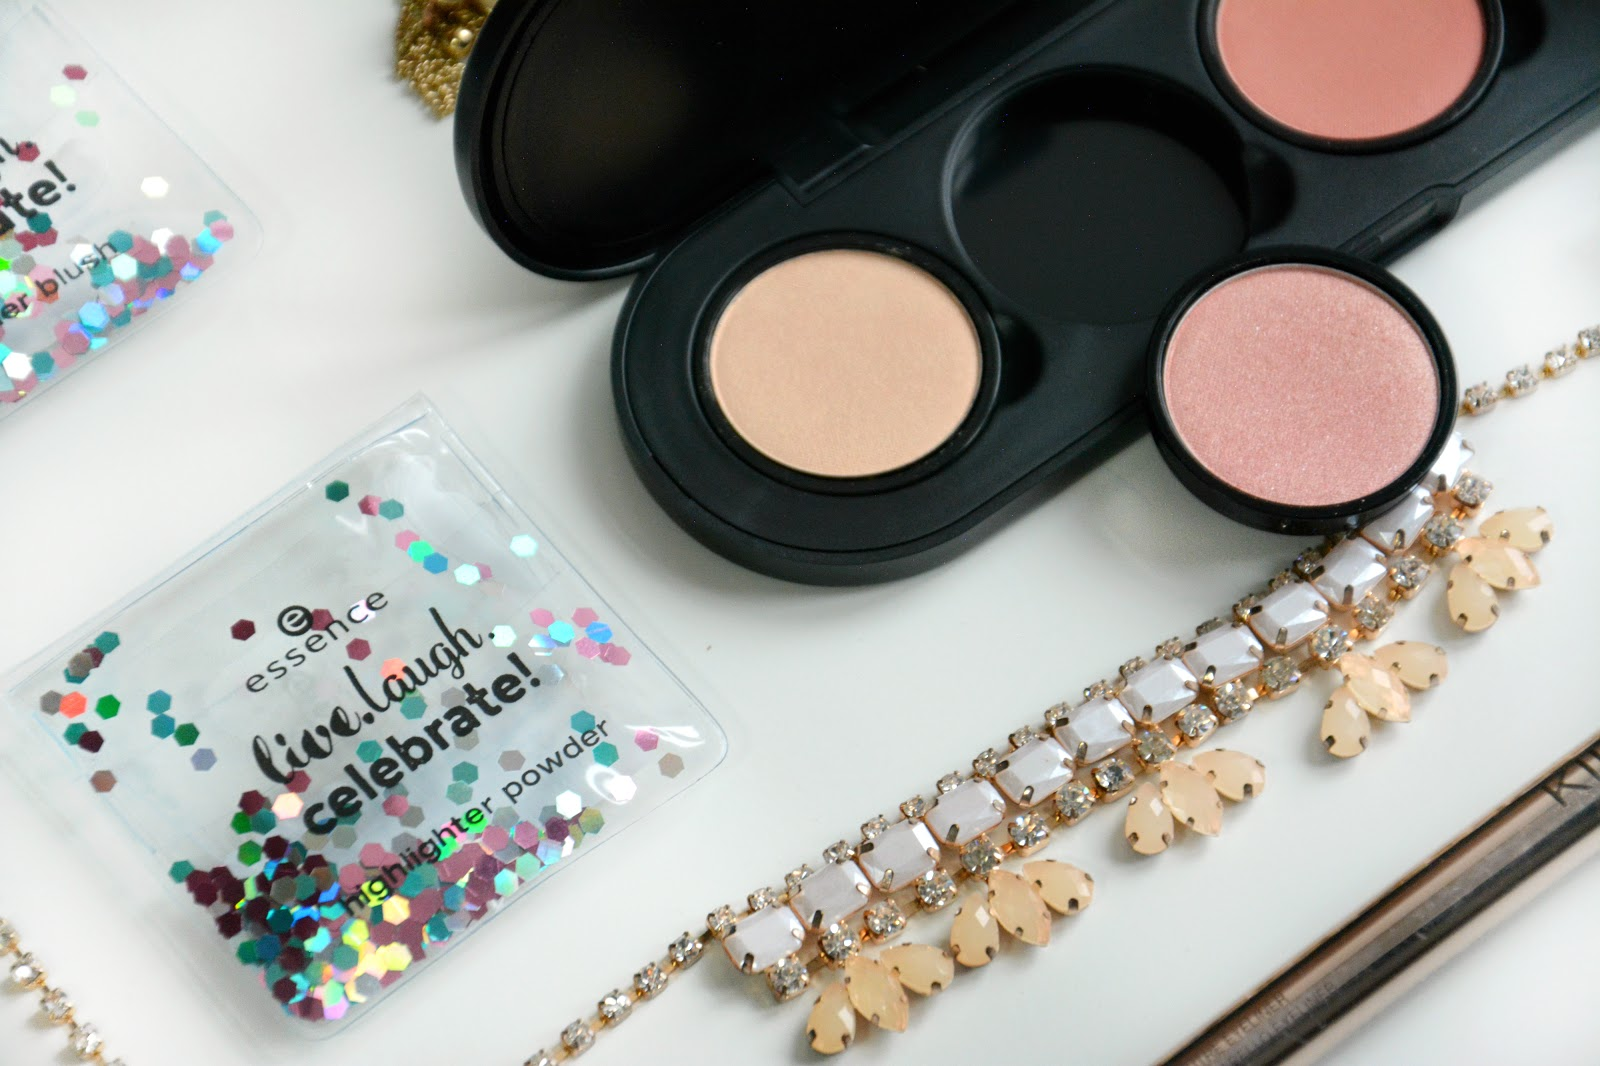 Essence My Must Haves Palette, Essence My Must Haves Highlighting Powder 01; Essence My Must Haves Soft Shimmer Blush 01; Essence My Must Haves Soft Satin Blush 01